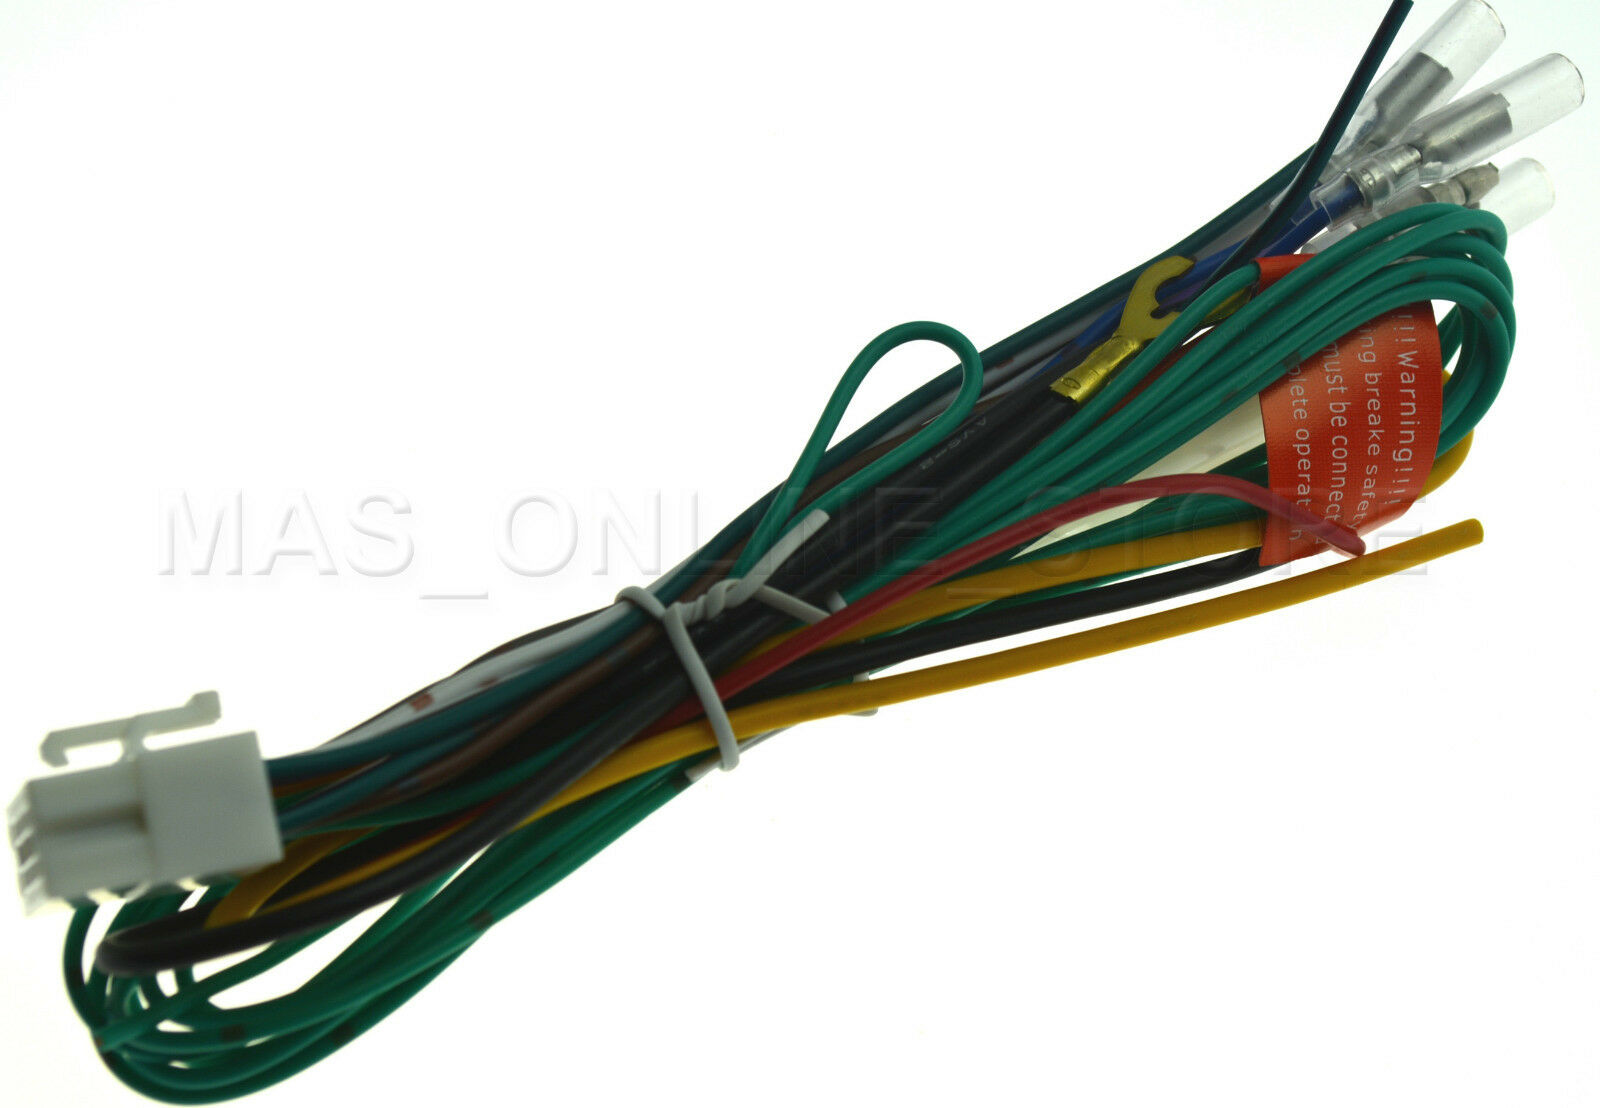 Clarion Cz500 Wiring Diagram 28 Images Xmd3 Vx 409 Vx409 Genuine Power Wire Harness Pay Cz 101 Dolgular Com